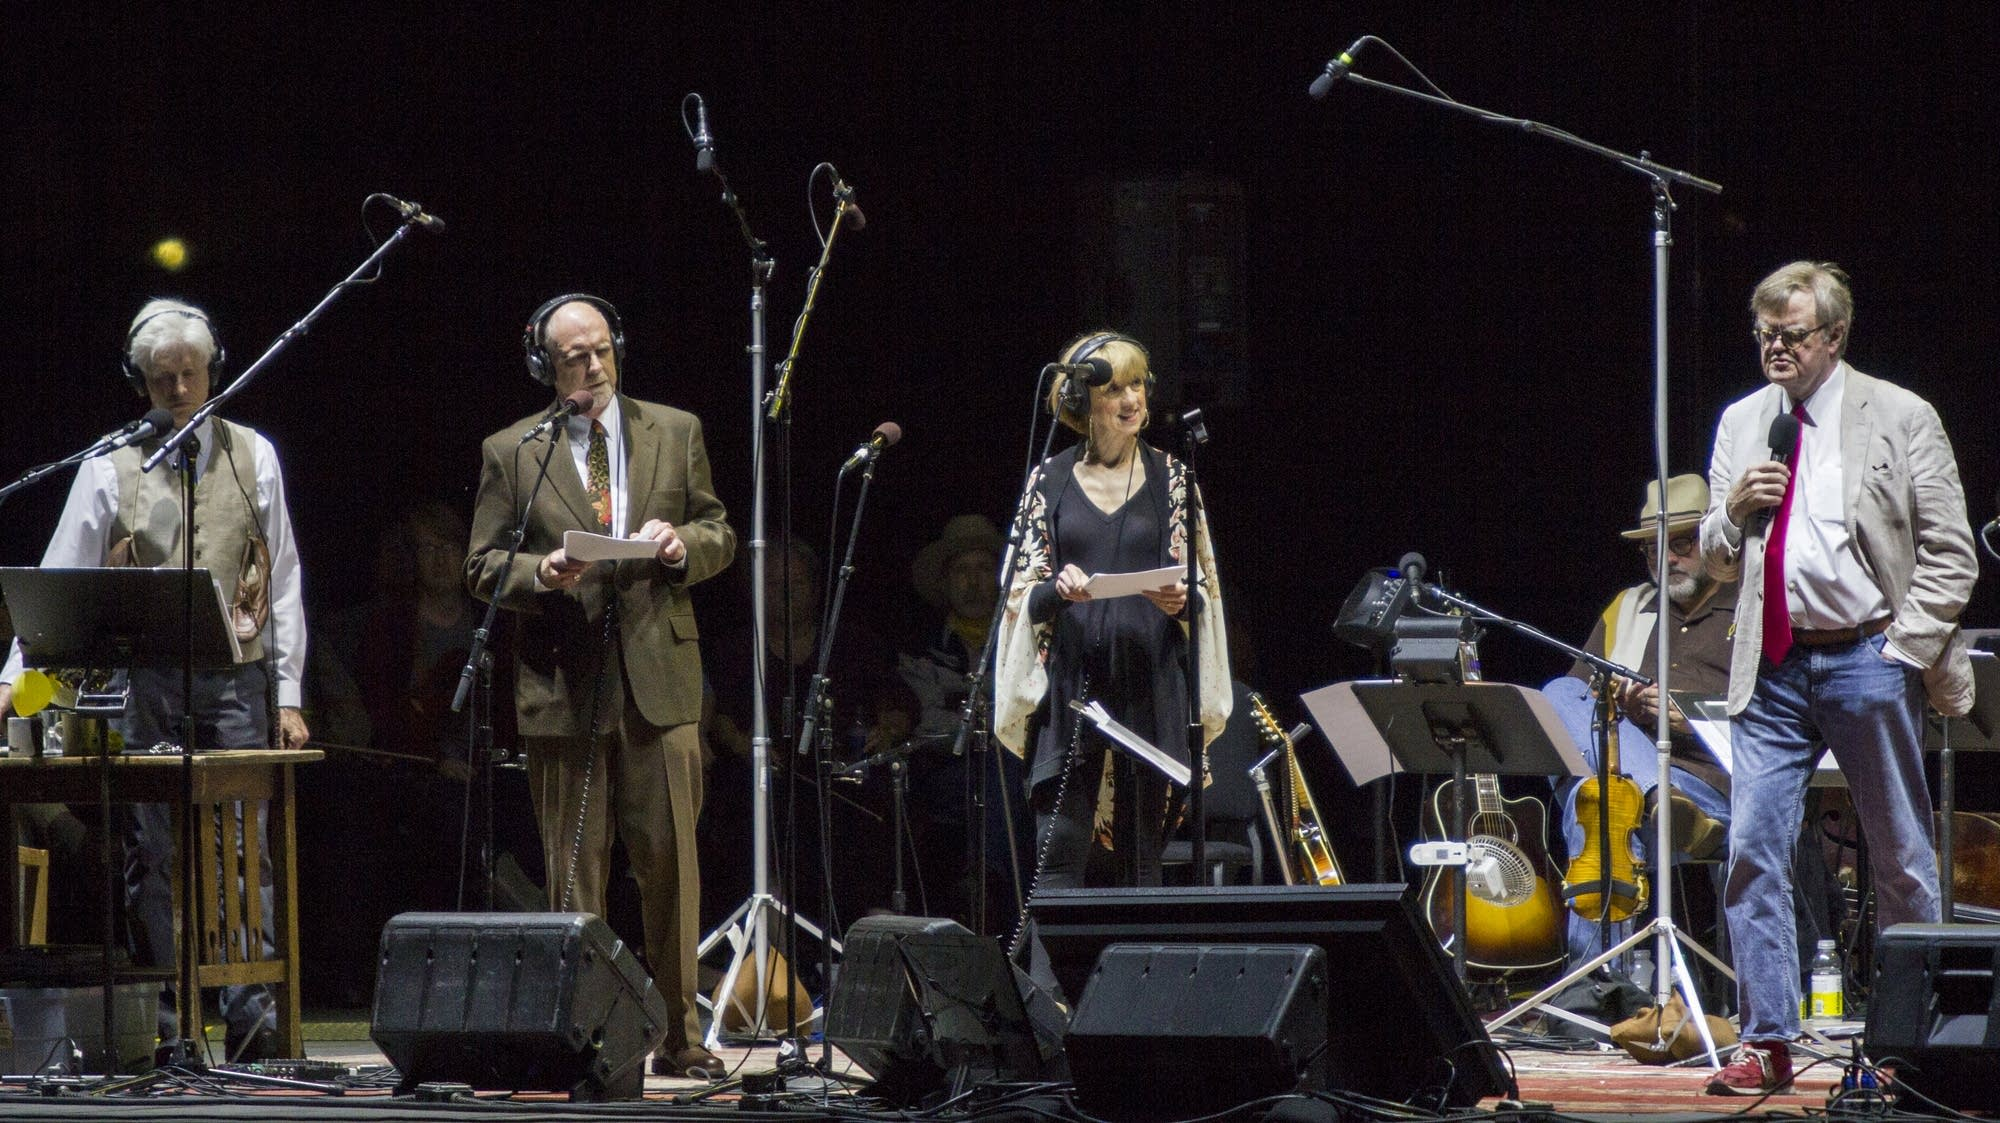 Fred Newman, Tim Russell, Sue Scott, and Garrison Keillor